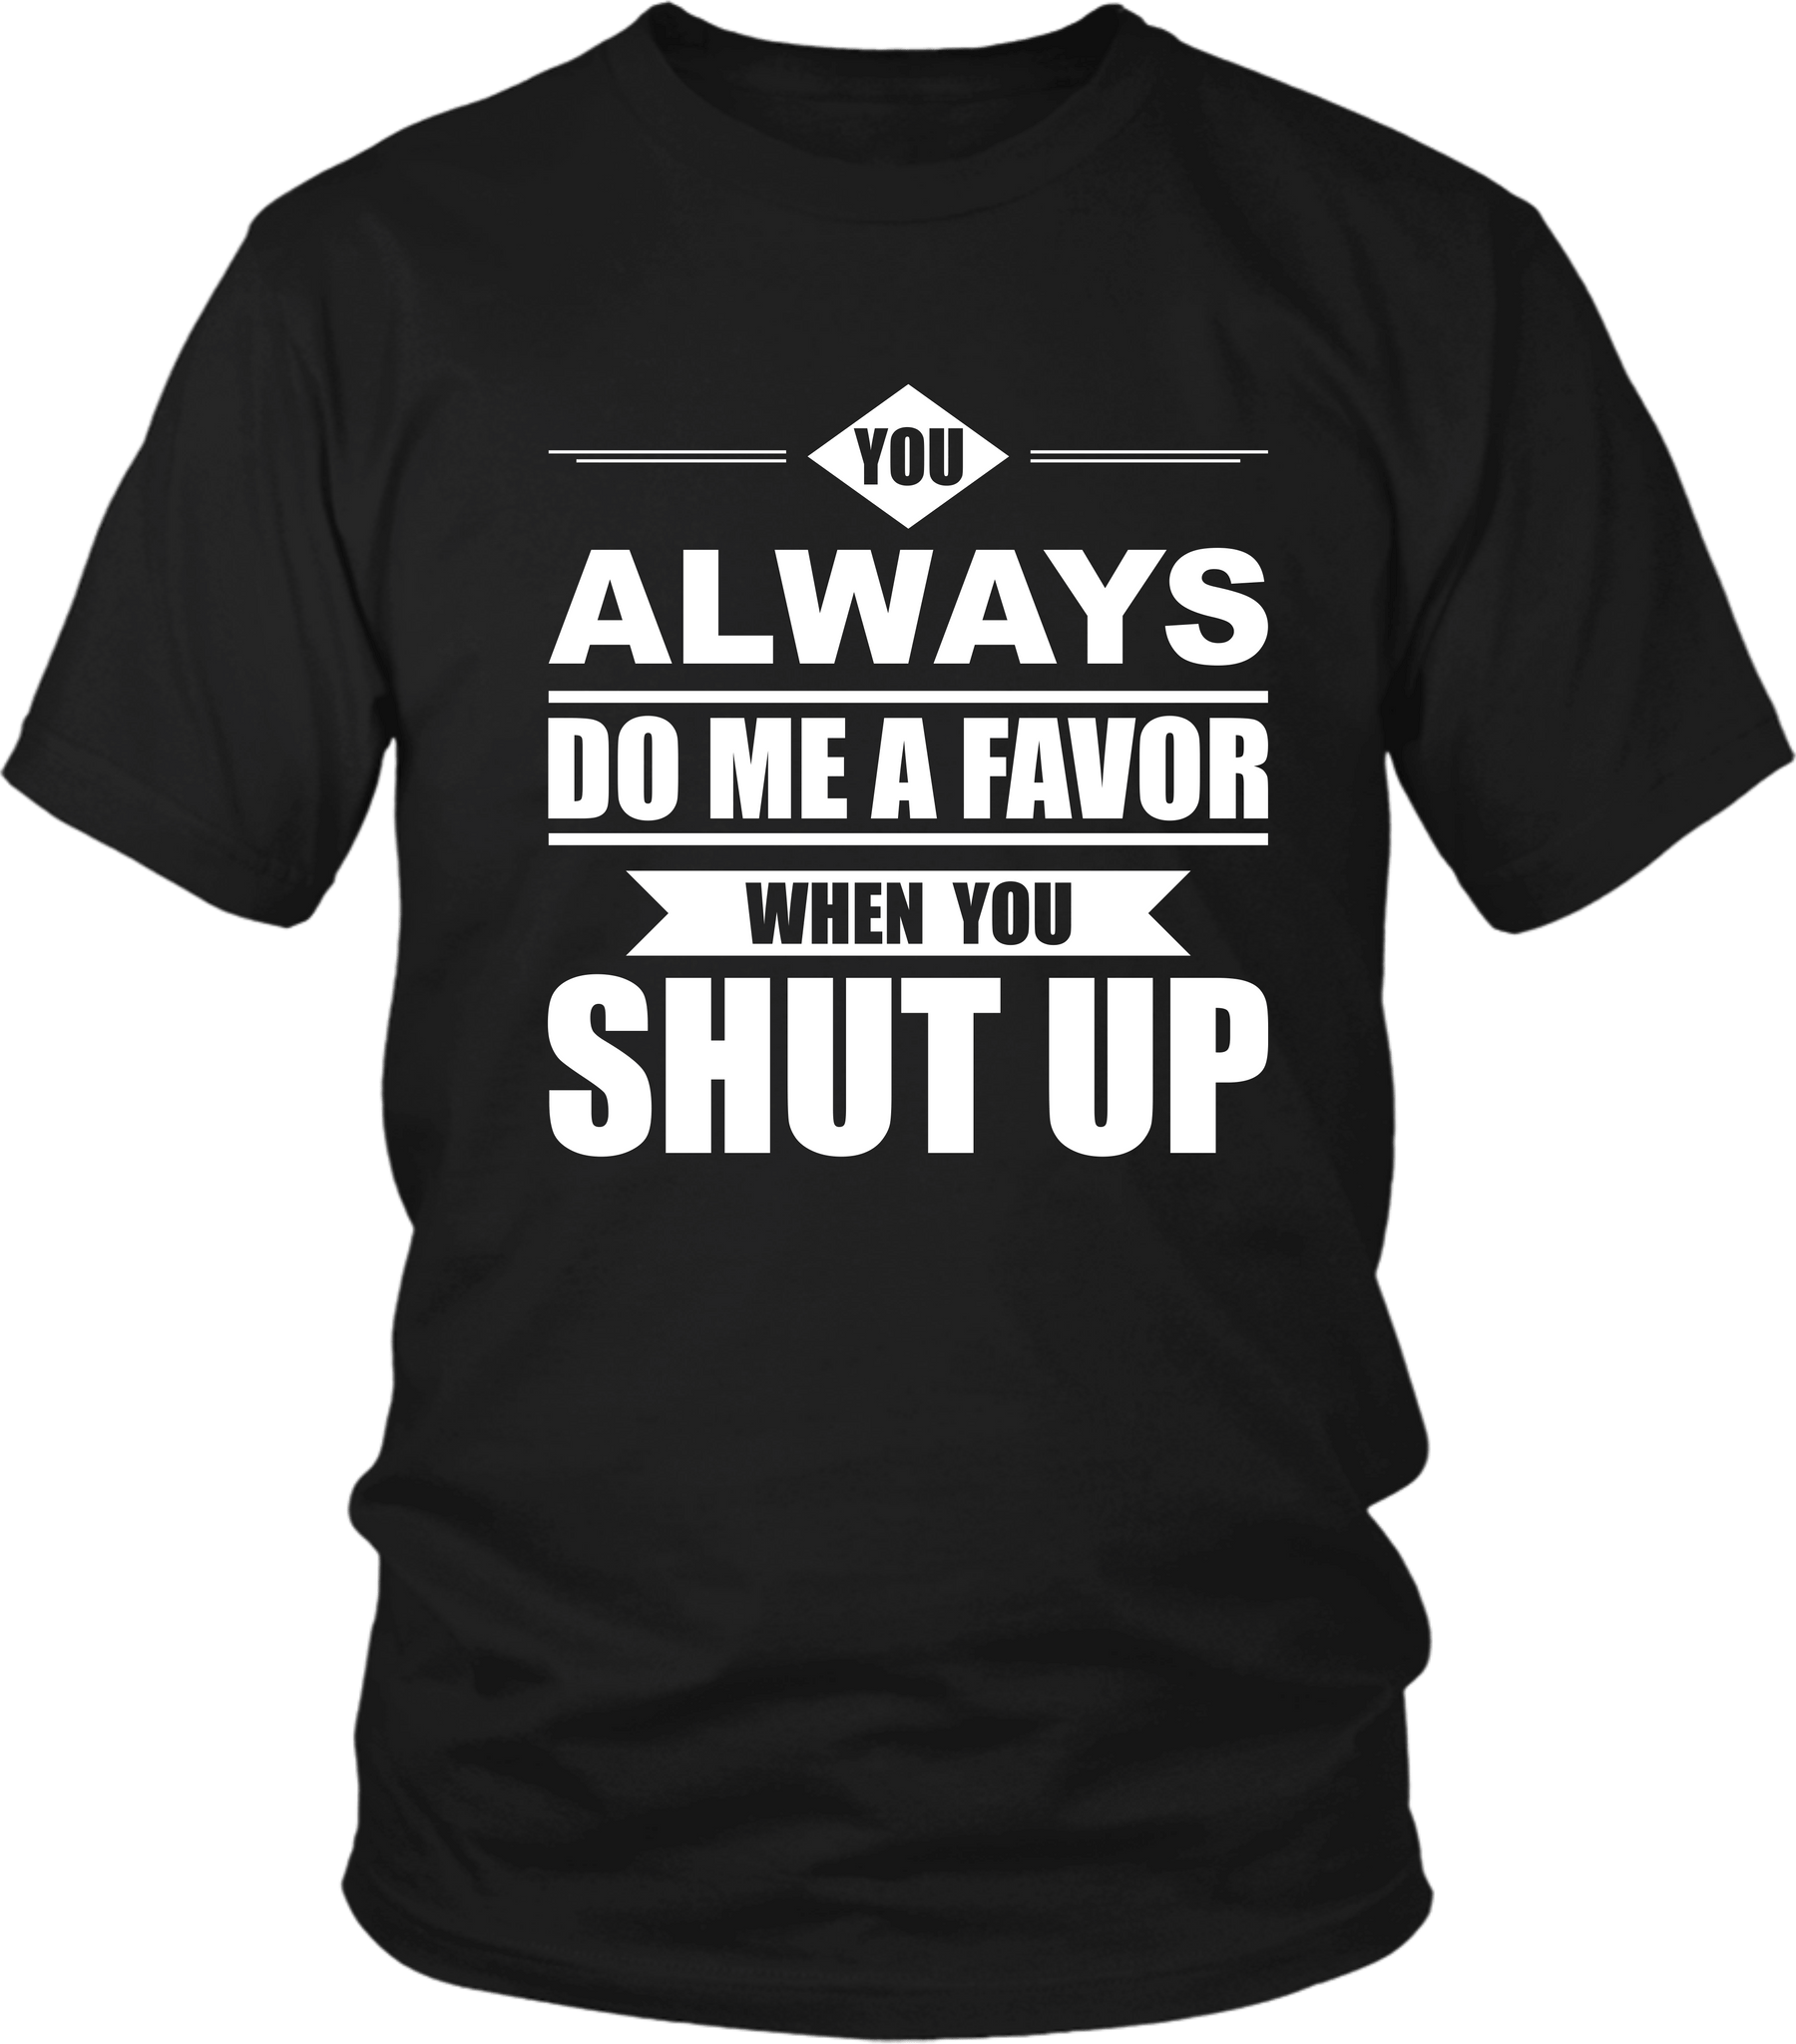 Trendy Tee***You Always Do Me A Favor When You Shut Up** Funny T-shirt  Design.... - xpertapparel